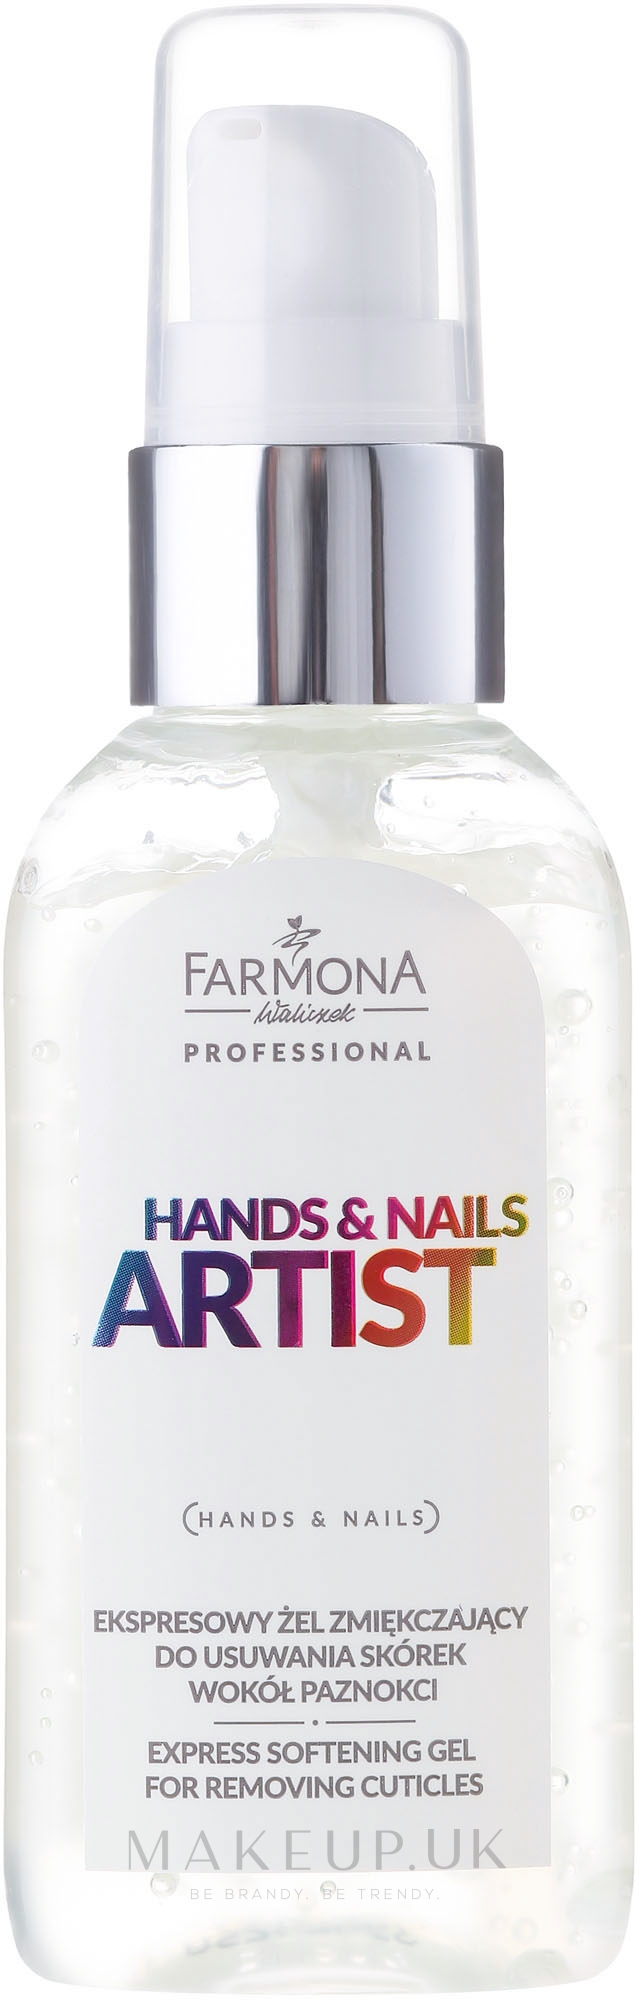 Cuticle Gel Remover - Farmona Hands and Nails Artist Express Softening Gel For Removing Cuticles — photo 50 ml